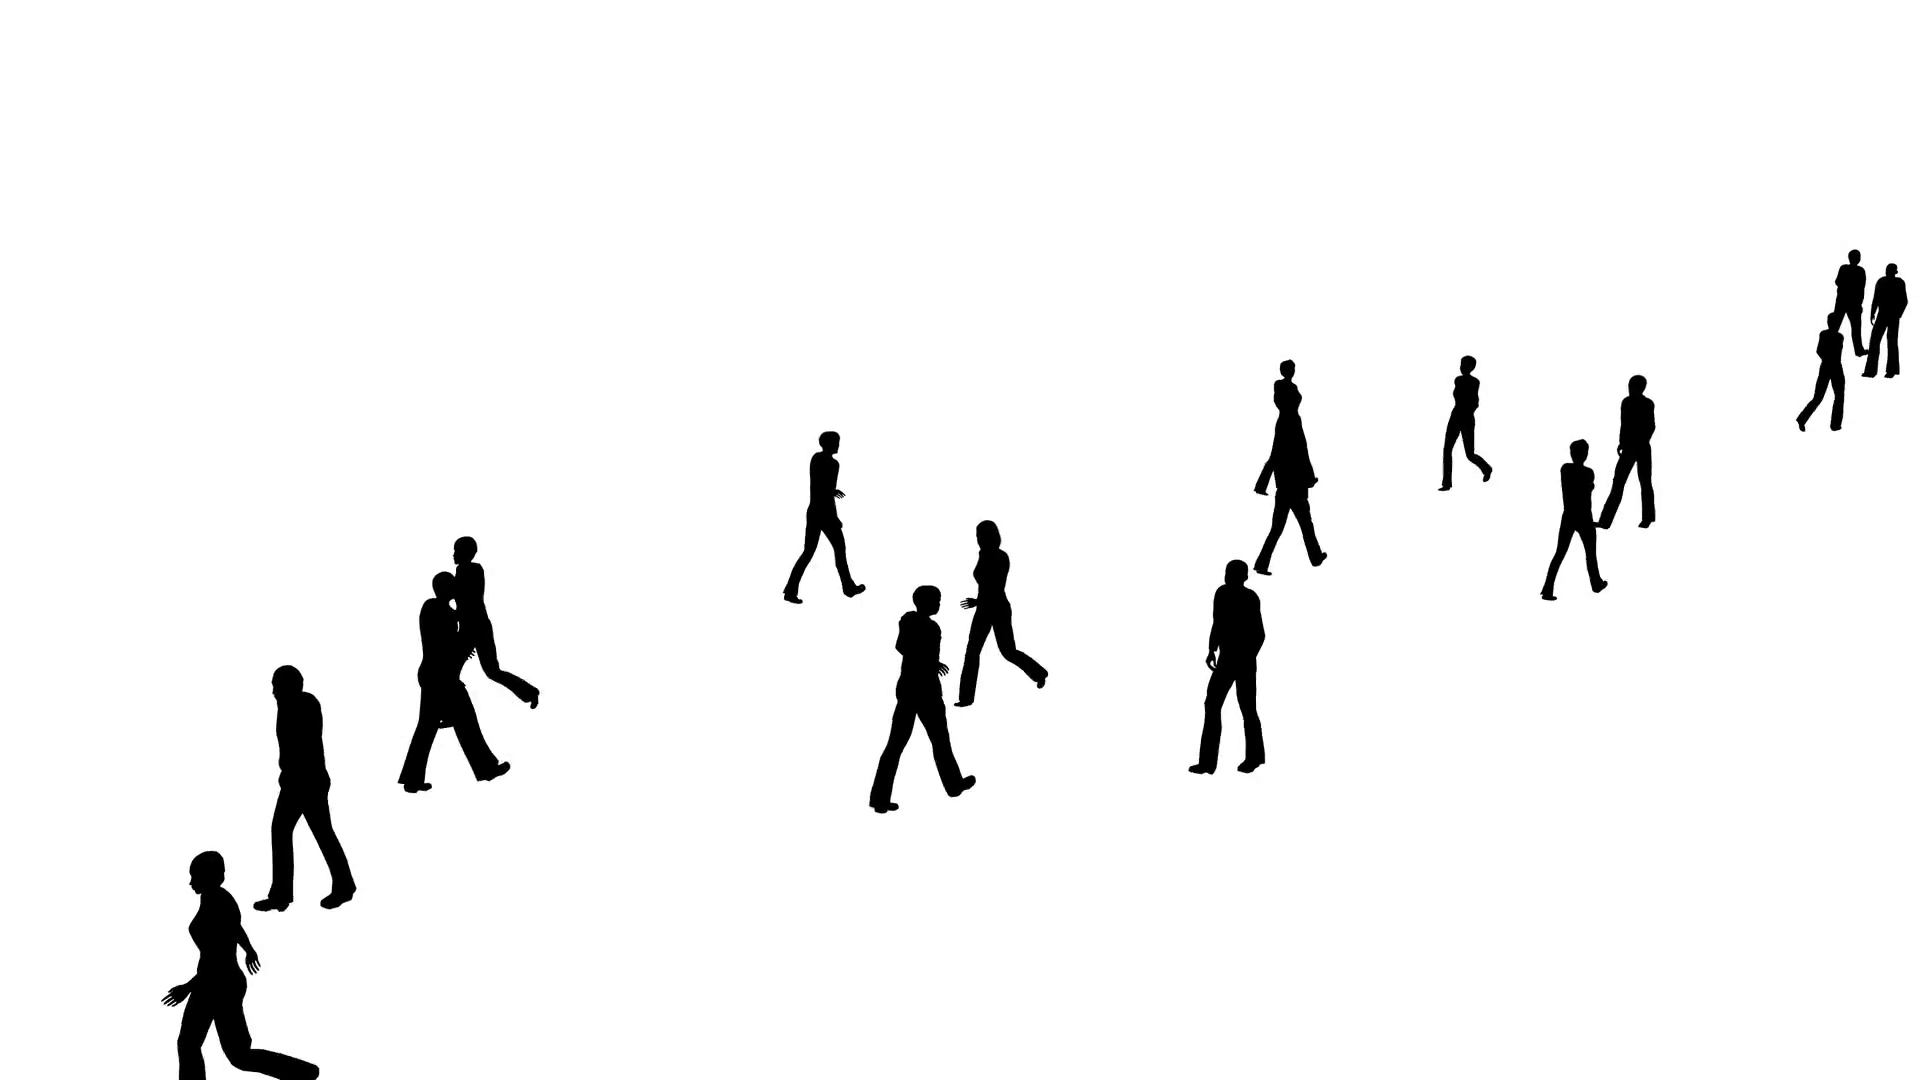 white silhouette people at getdrawings com free for personal use white silhouette people of motion clipart of jesus motion clipart on celebration